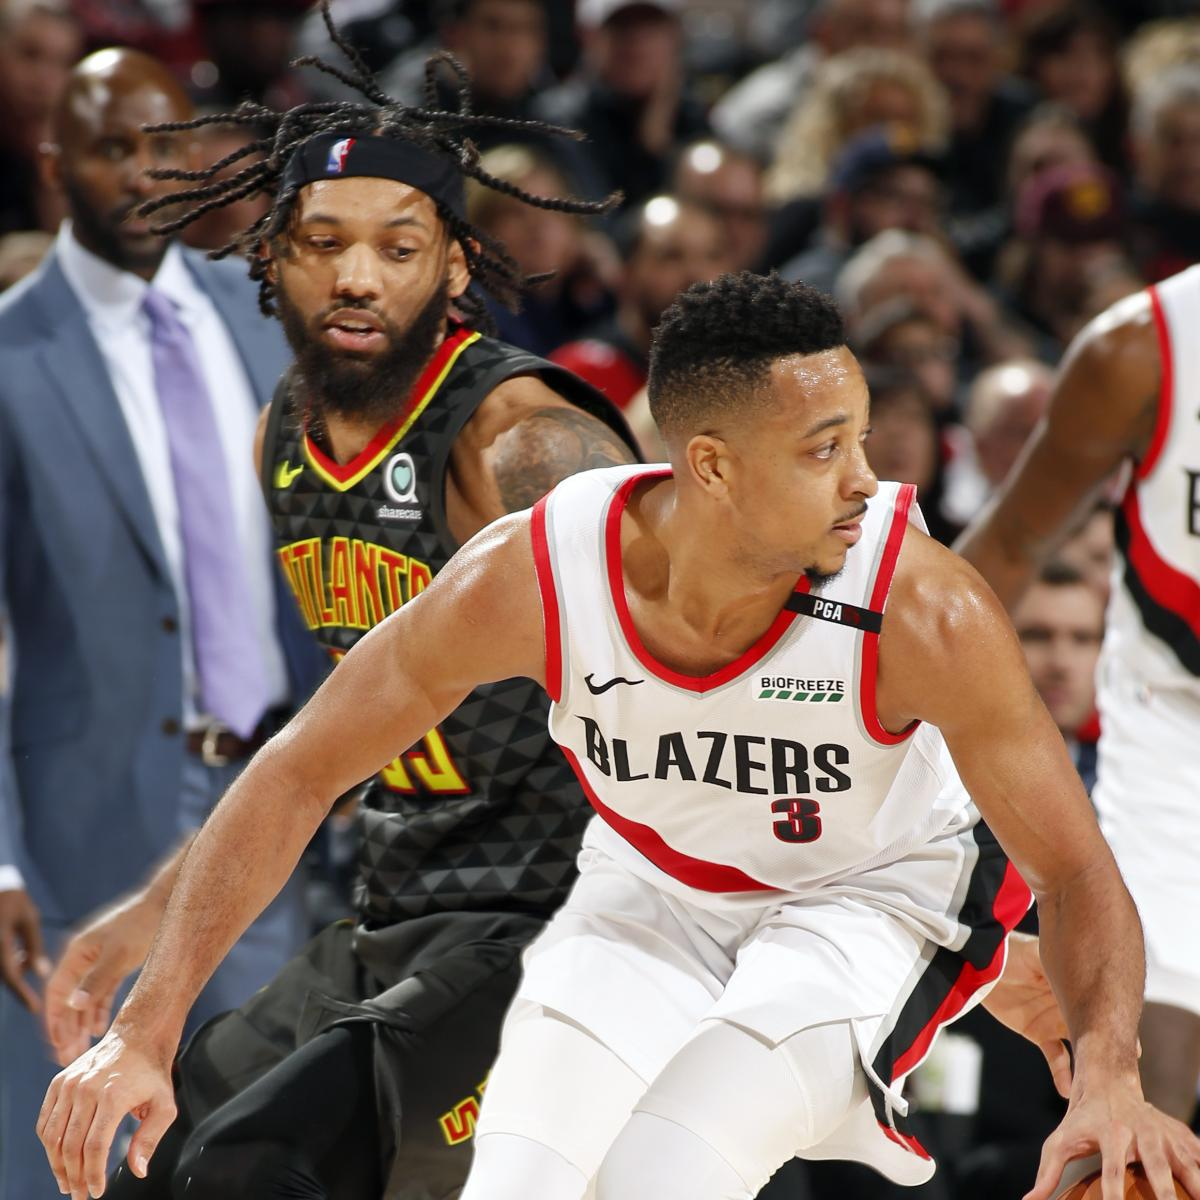 Portland Blazers Last Game: Hawks Lose To Trail Blazers 120-111 Despite Trae Young's